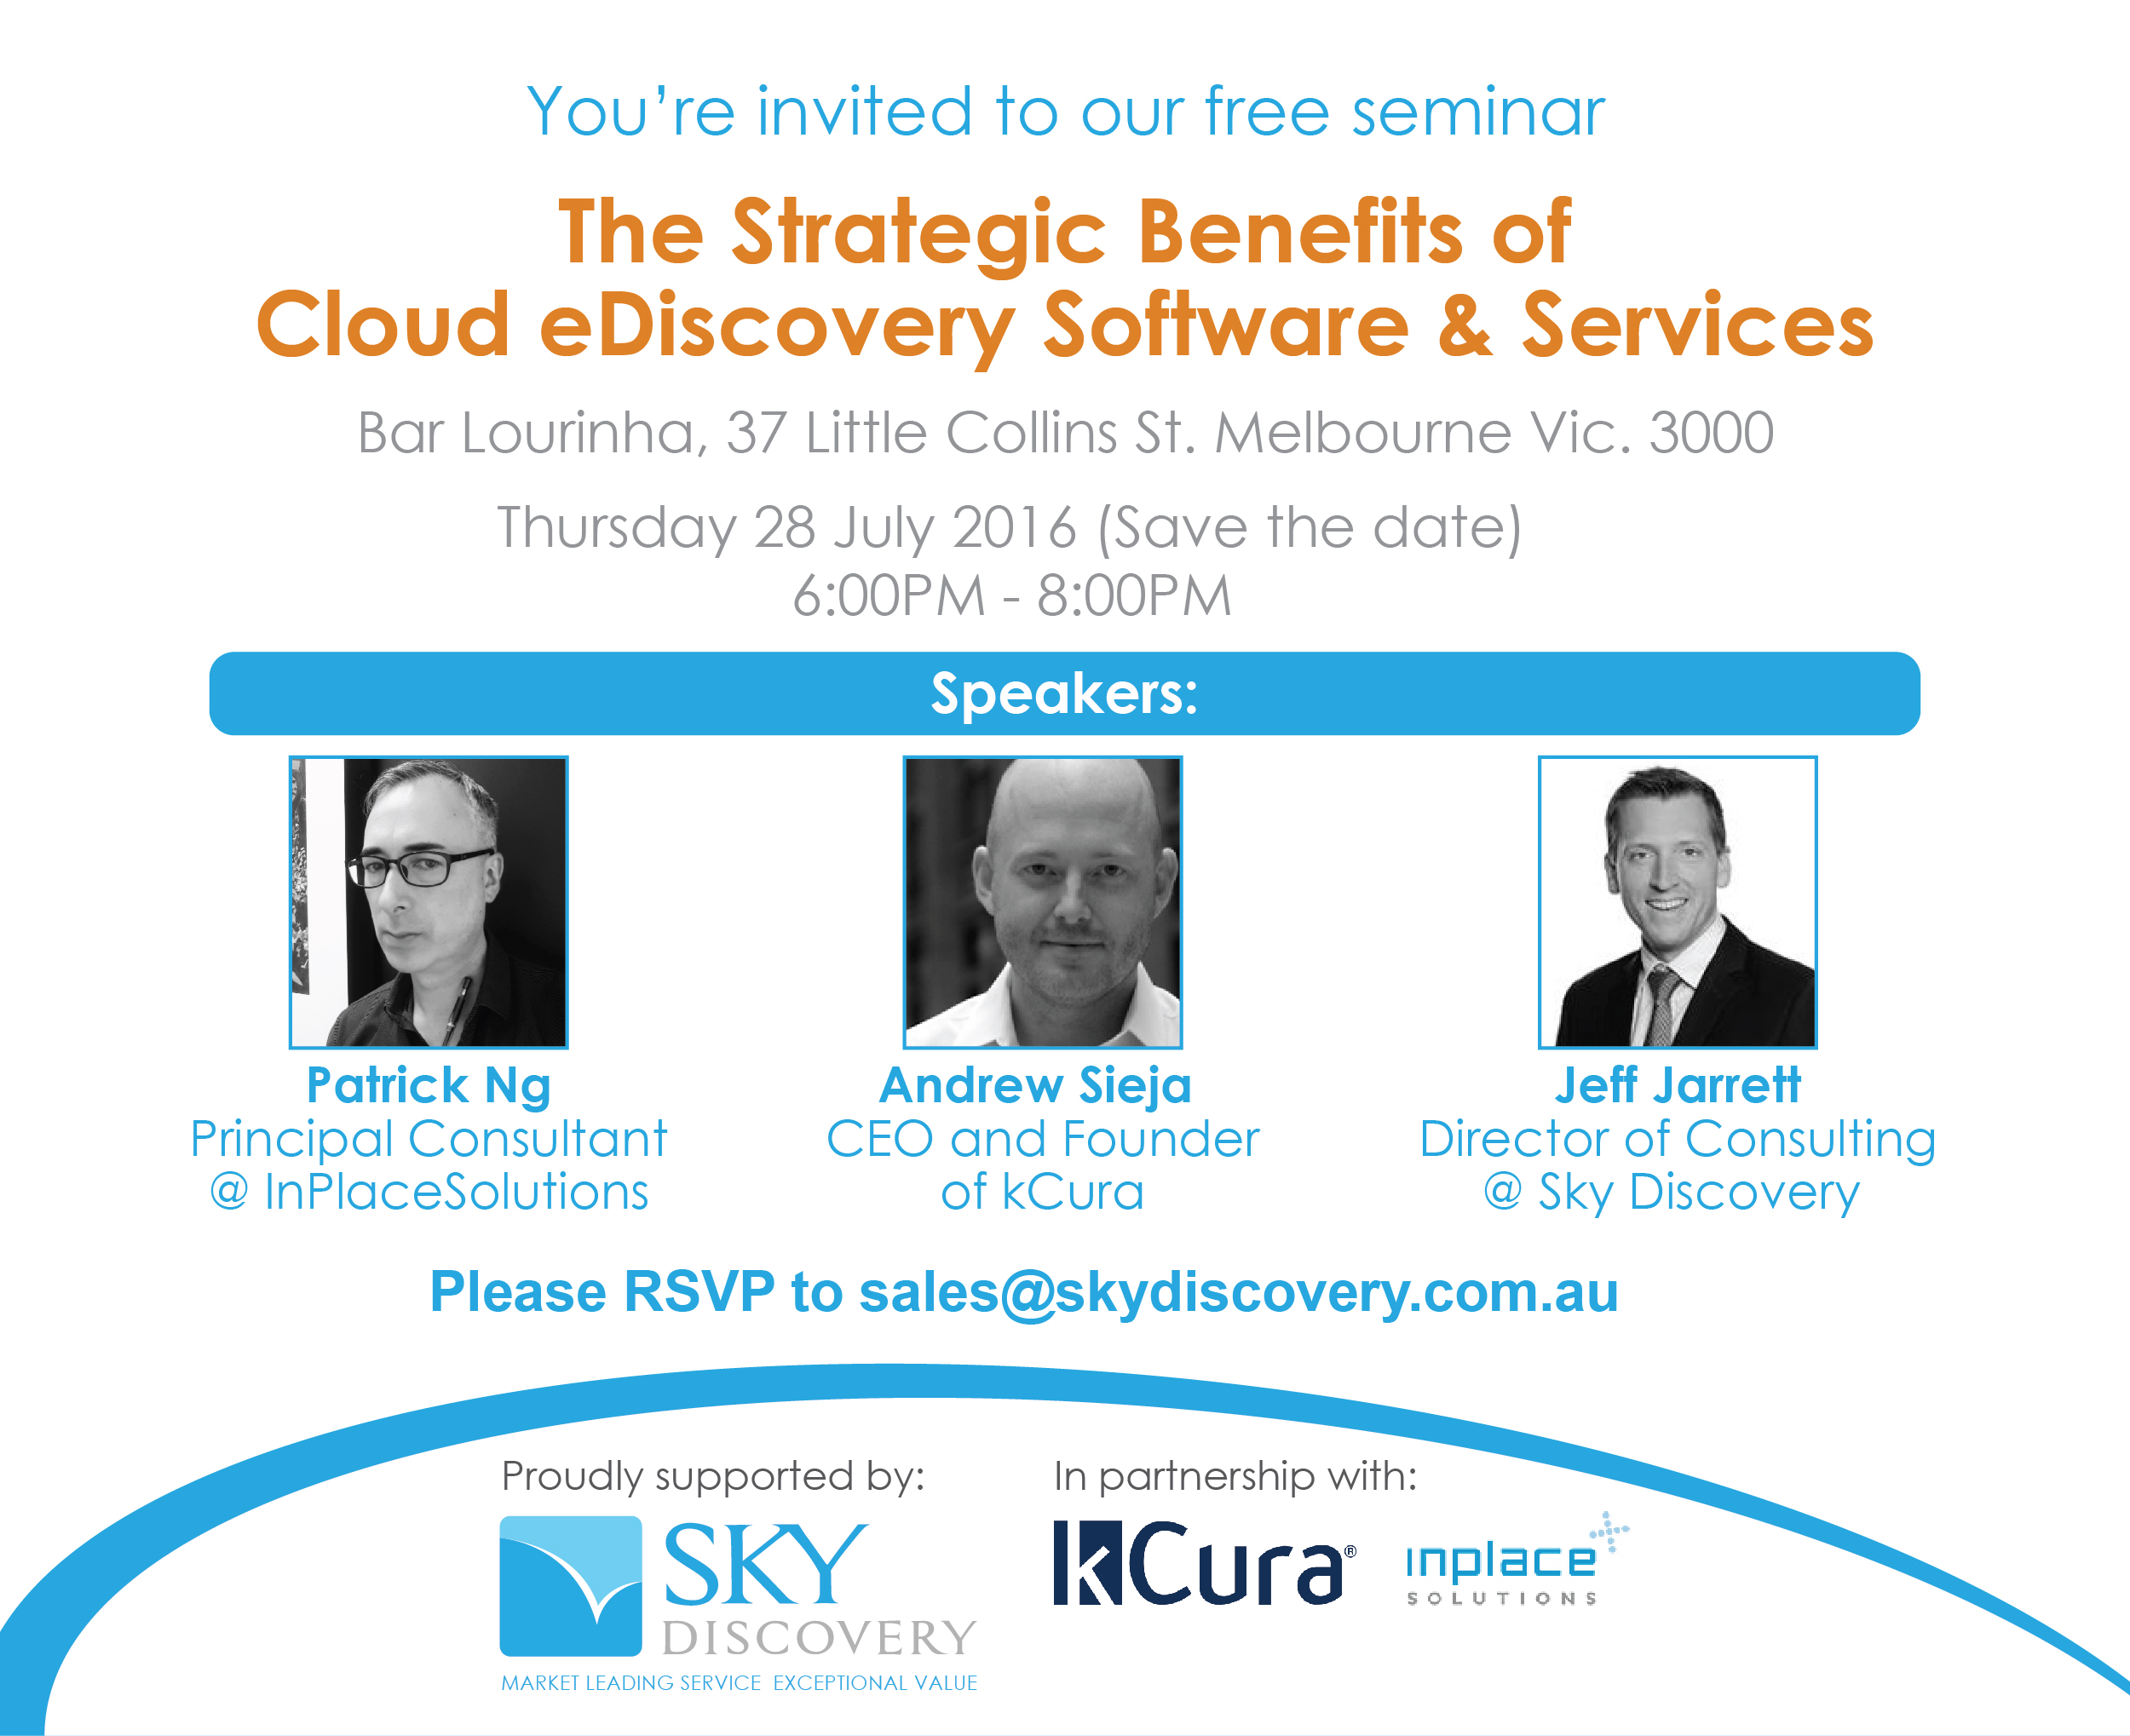 SKYDISCOVERY_EVENT_INVITE